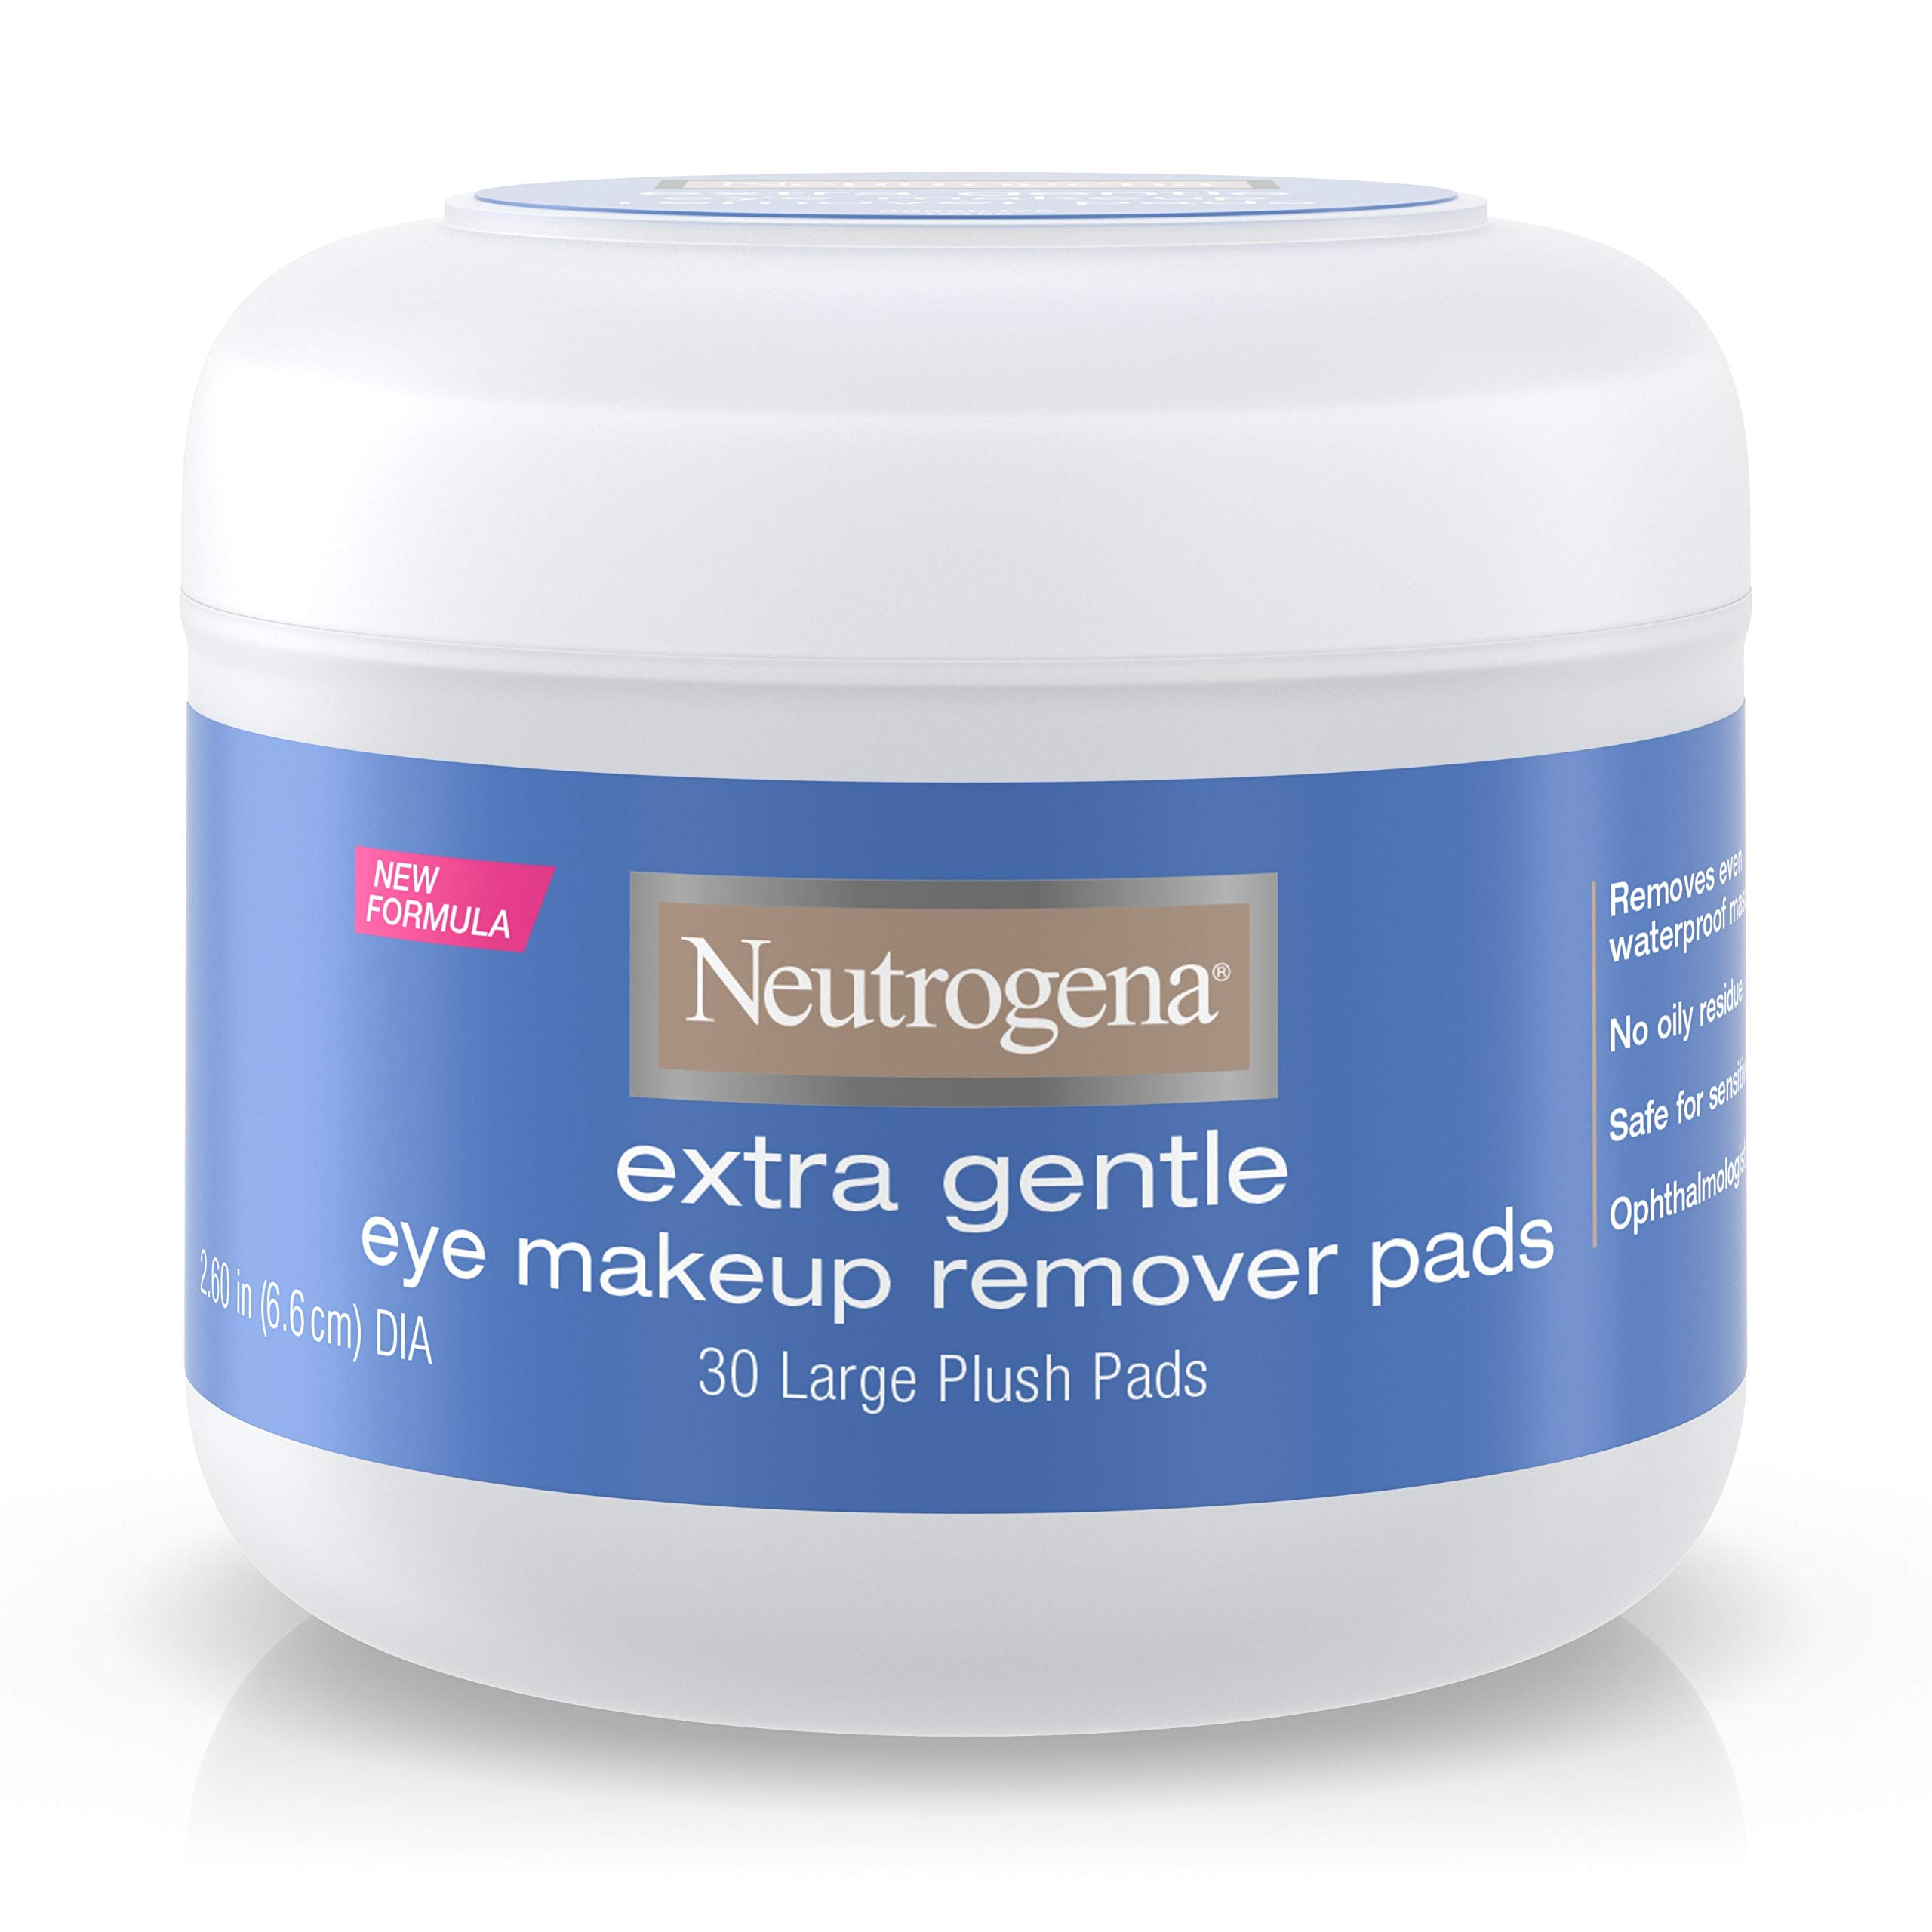 Neutrogena Extra Gentle Eye Makeup Remover Pads 30 Pads Buy Online In Cook Islands Neutrogena Products In Cook Islands See Prices Reviews And Free Delivery Over Nz 100 Desertcart